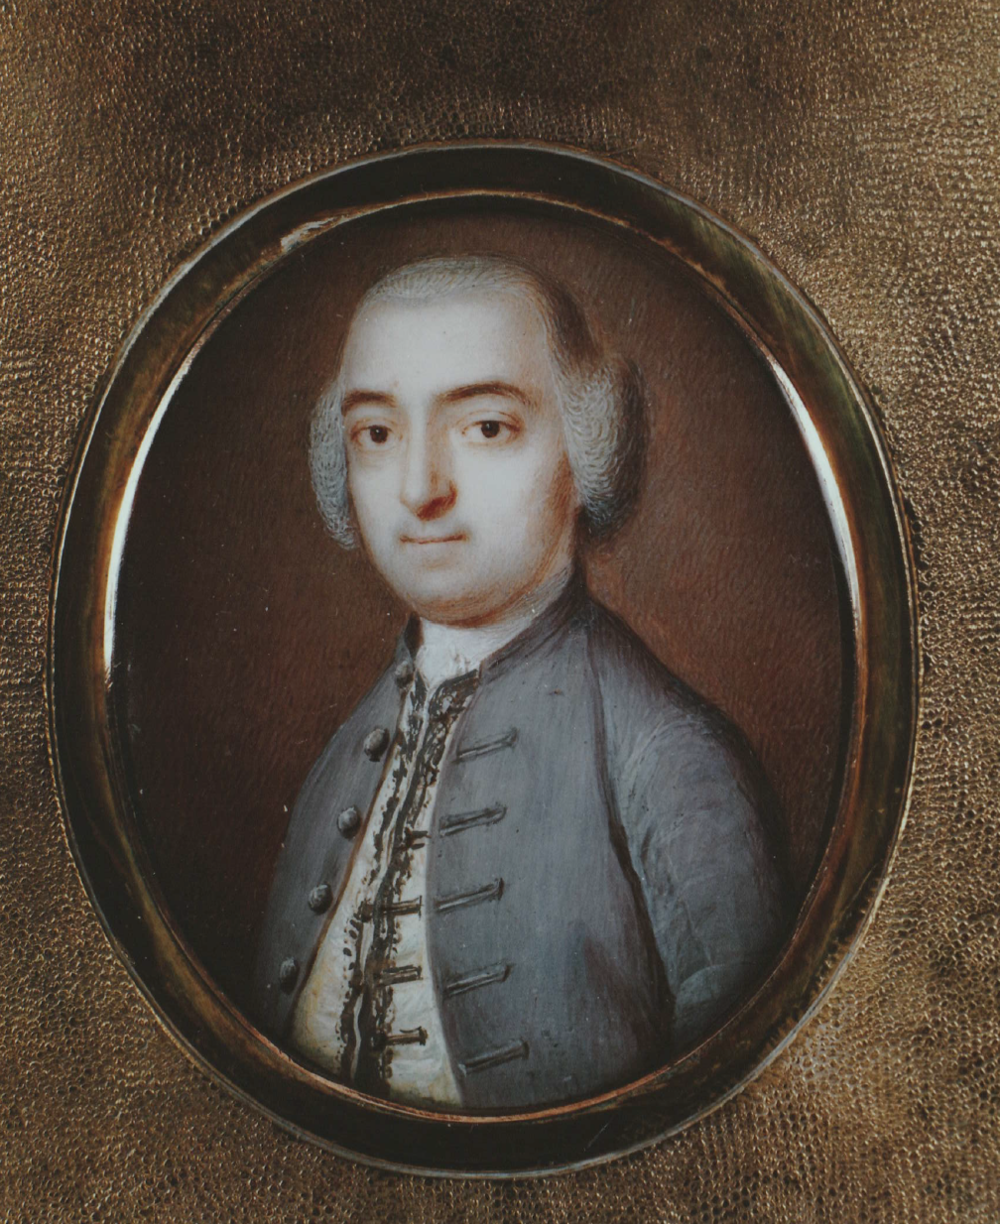 Sir Thomas Wright, Lord Mayor of London 1785